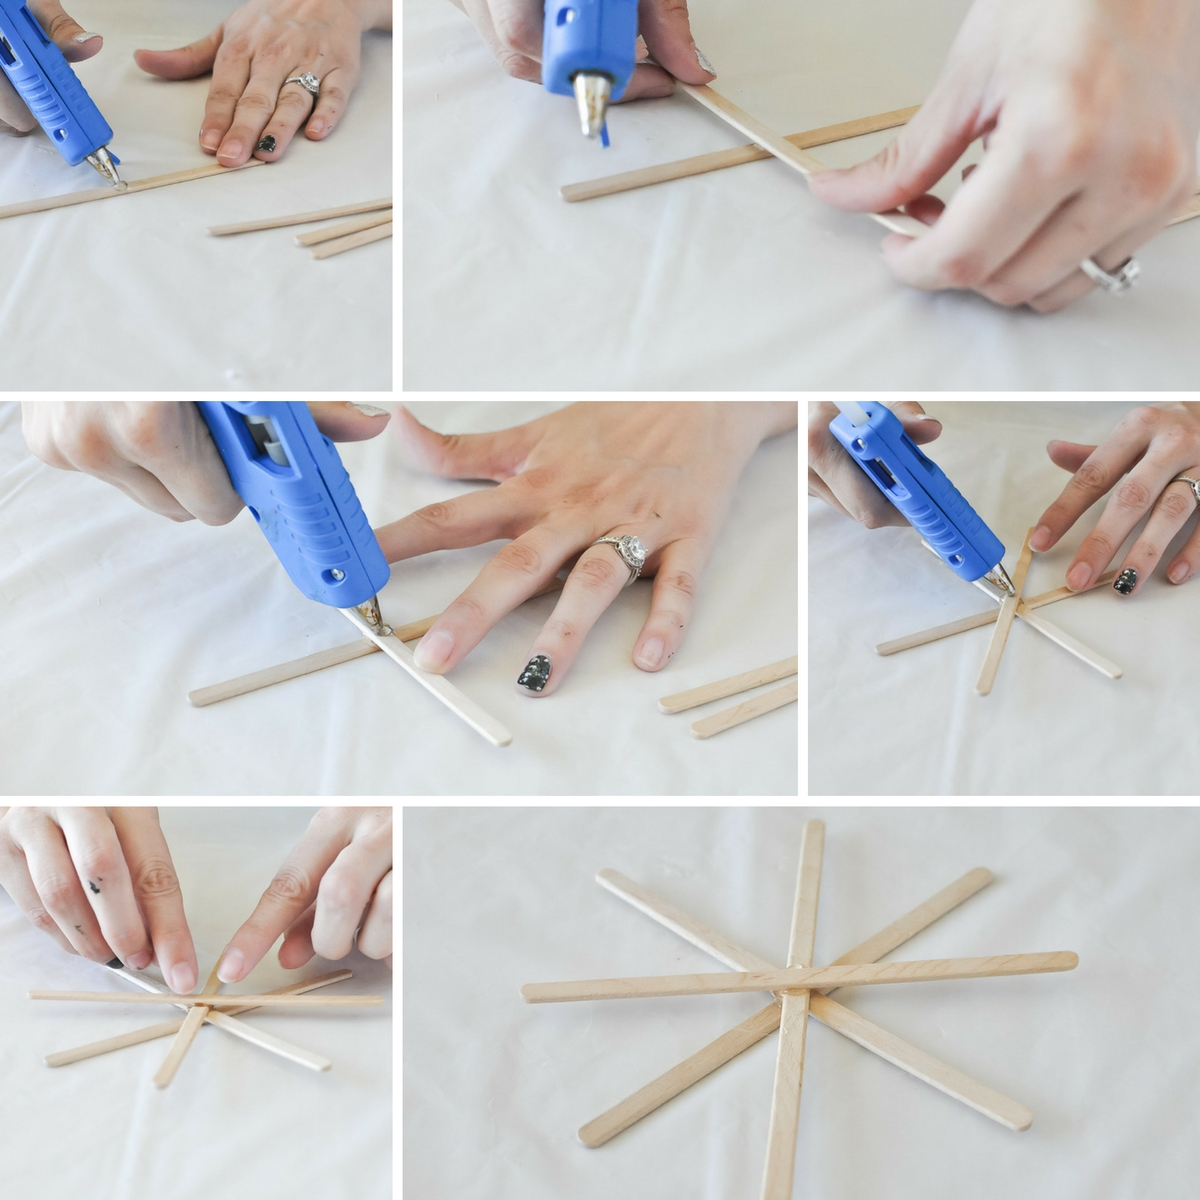 Assemble-Five-Minute-Spiderweb Craft | Awesome with Sprinkles